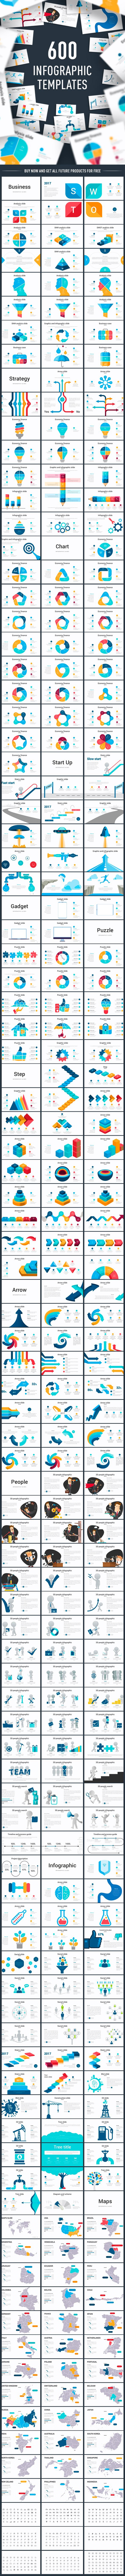 Best 25 free powerpoint templates download ideas on pinterest pack infographic slides free update creative powerpoint templates download here toneelgroepblik Gallery